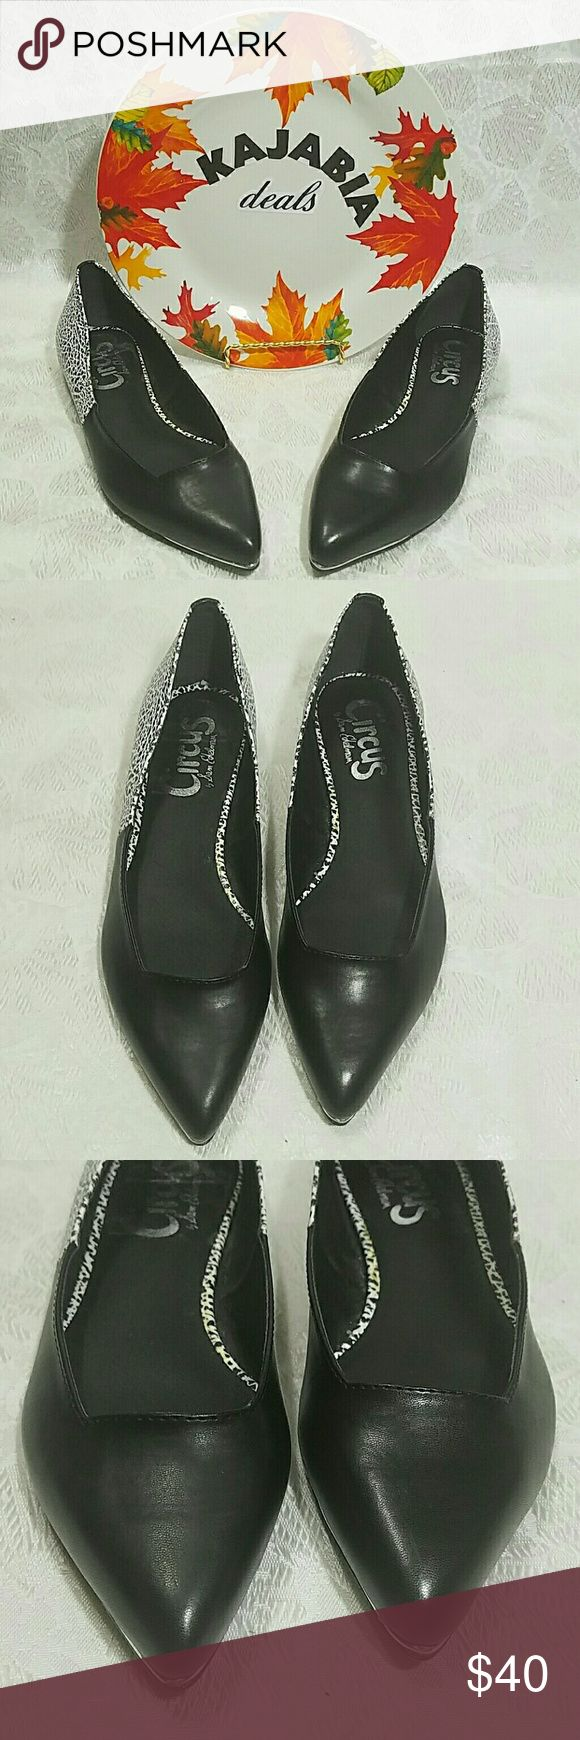 Circus by Sam Edleman Flats. Size 7 Circus by Sam Edelman Flats. Size 7. Pre owned. In excellelent condition. Black and white. Goes with everything. Comfortable to wear all day. Very pretty !! Circus by Sam Edelman Shoes Flats & Loafers